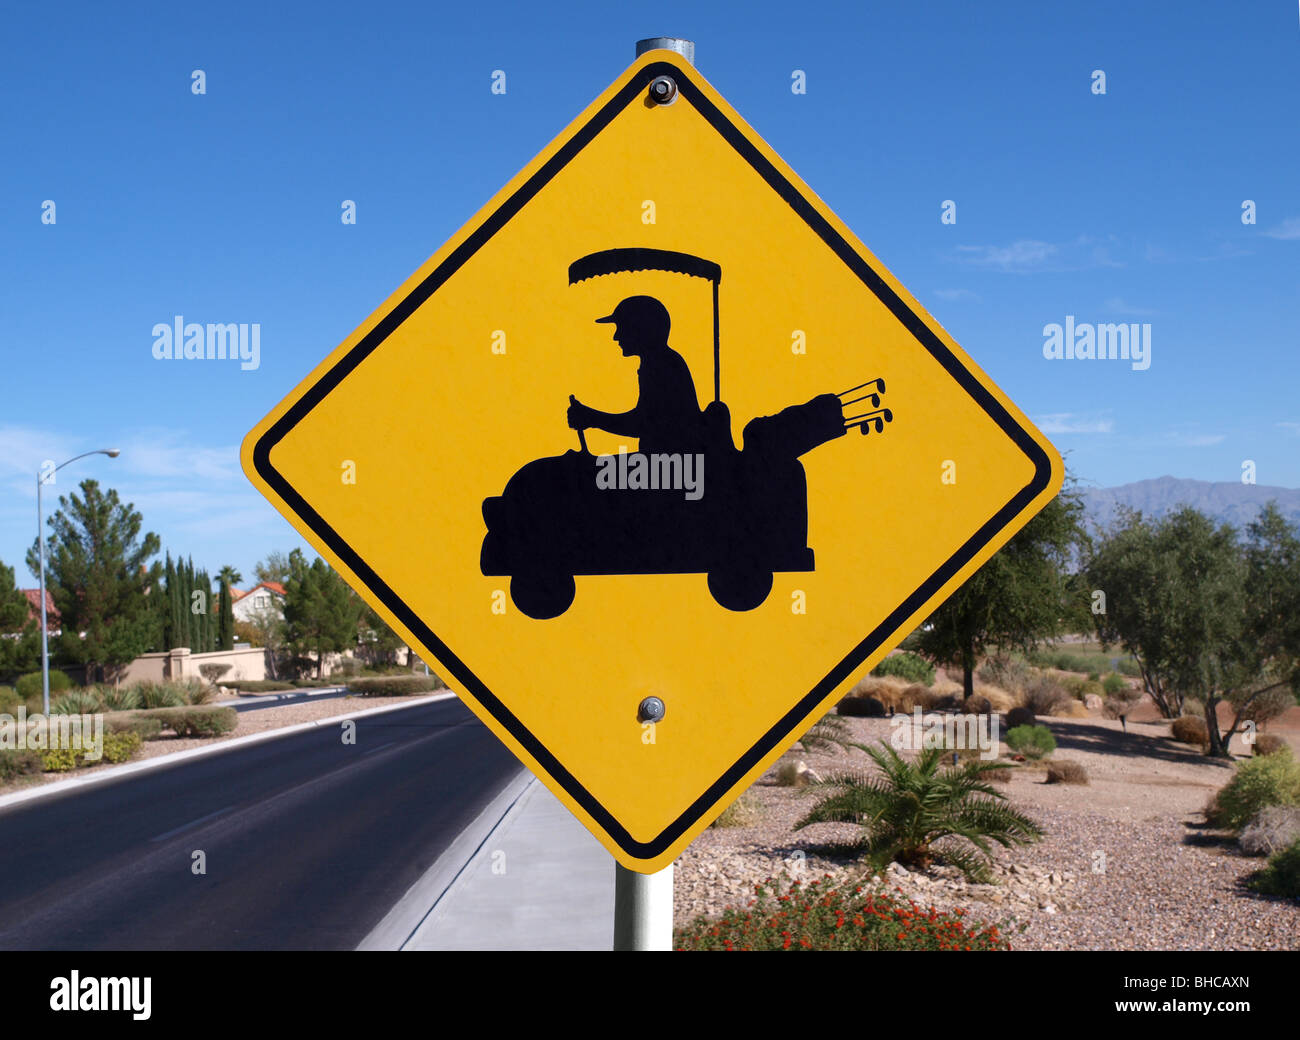 Golf cart crossing sign in a affluent desert community. - Stock Image